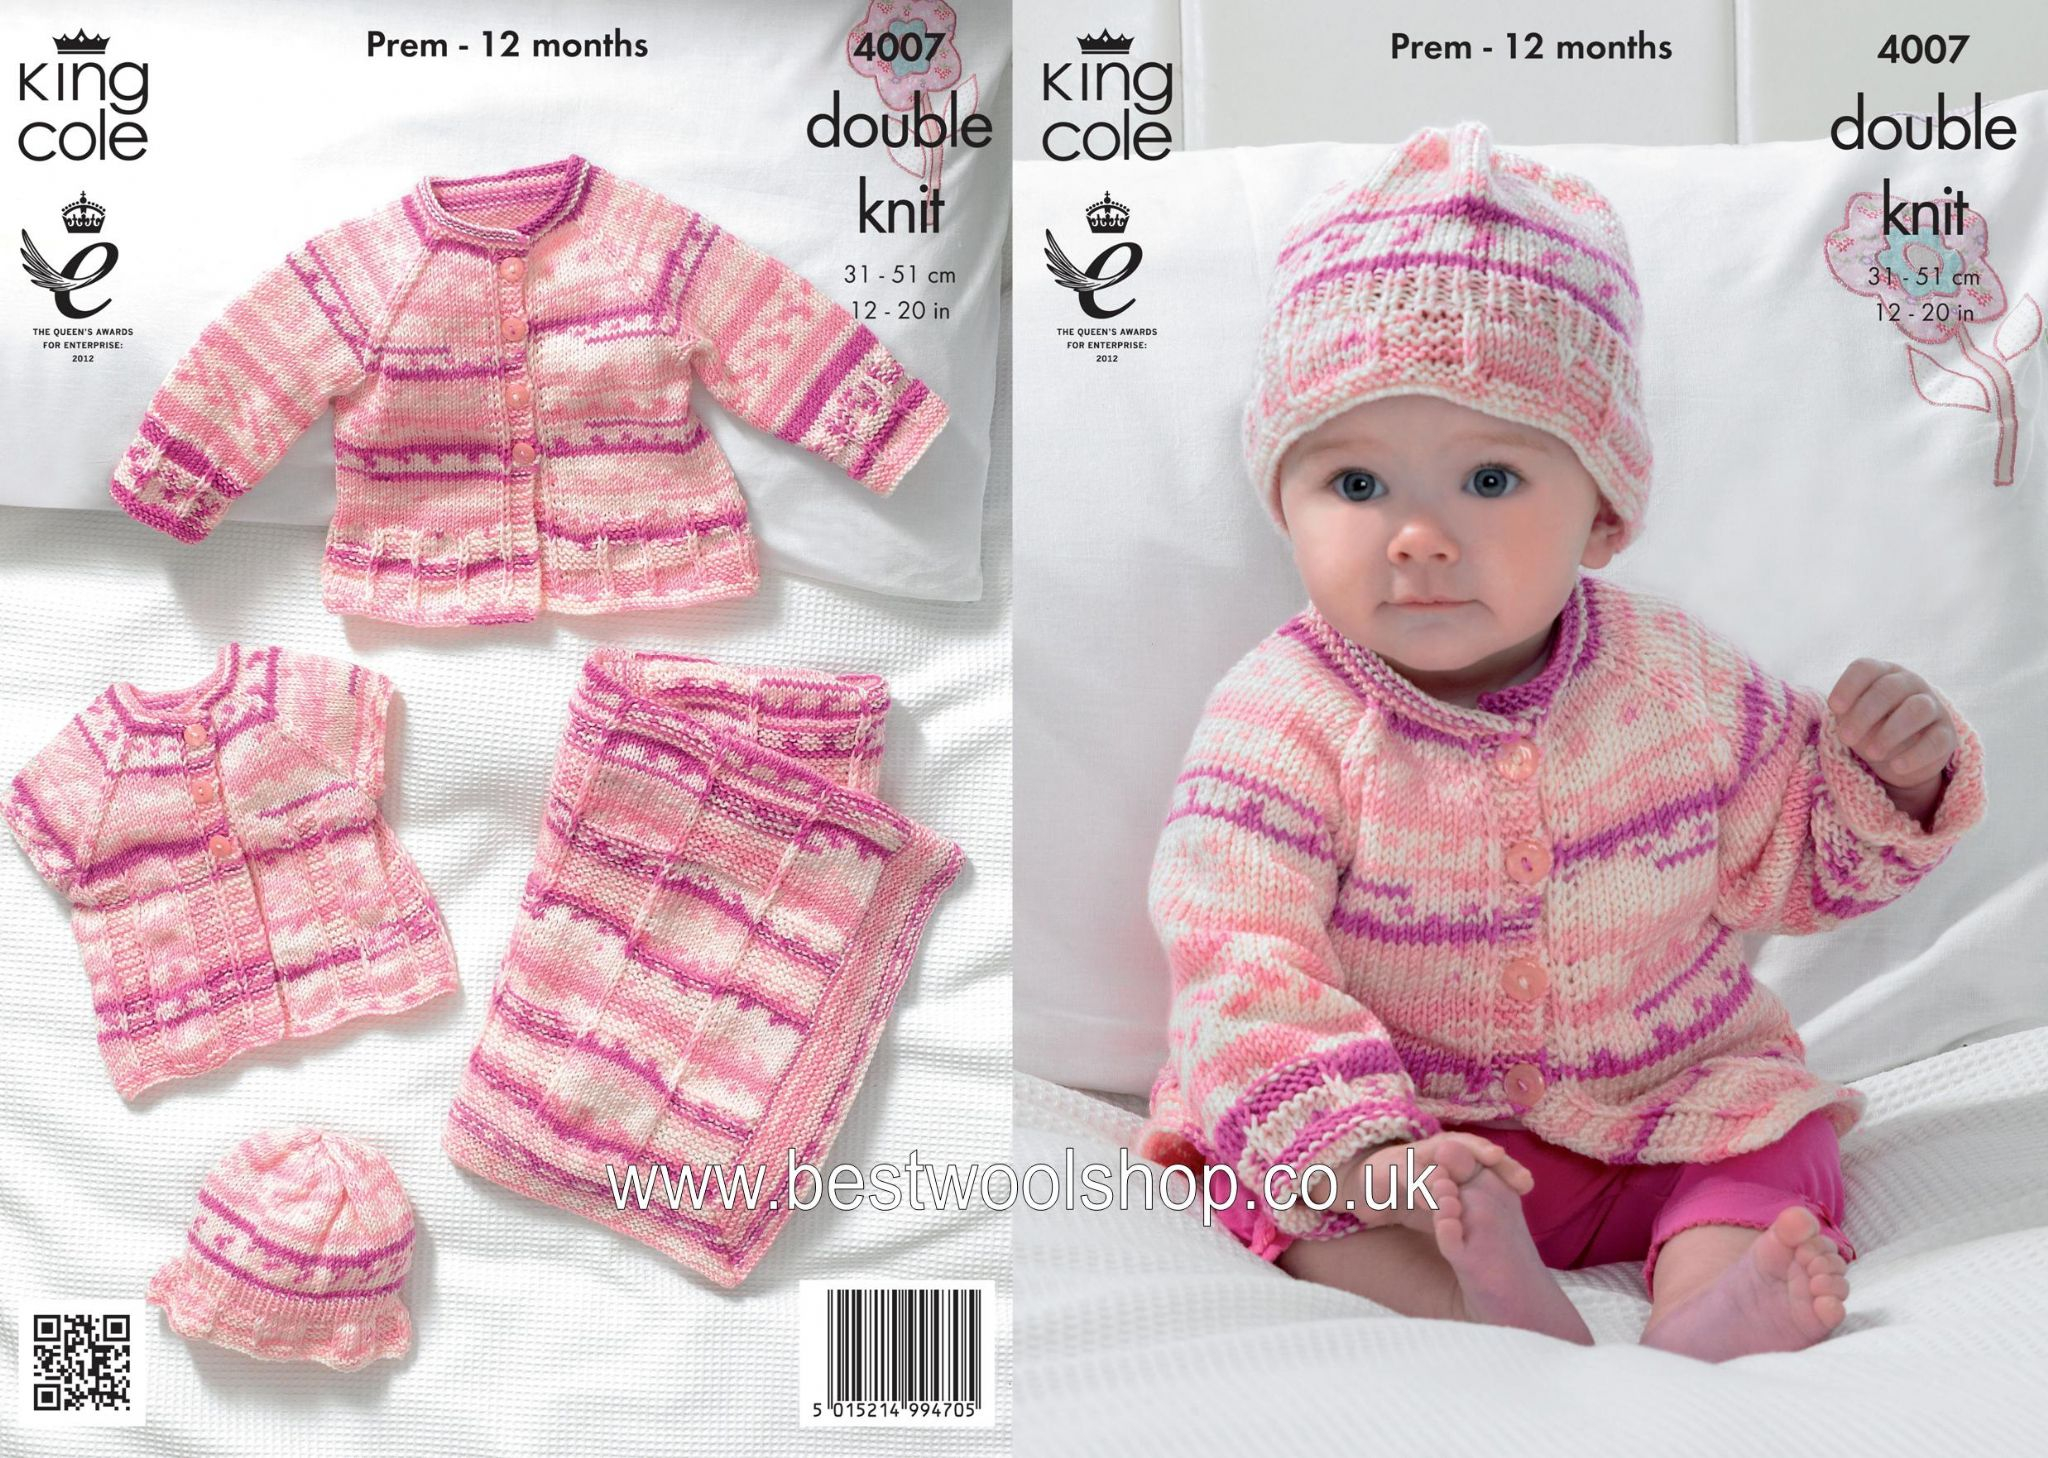 Baby Girl Blanket Knitting Patterns 4007 King Cole Cherish Cherished Dk Cardigan Hat Blanket Knitting Pattern To Fit Premature To 12 Months